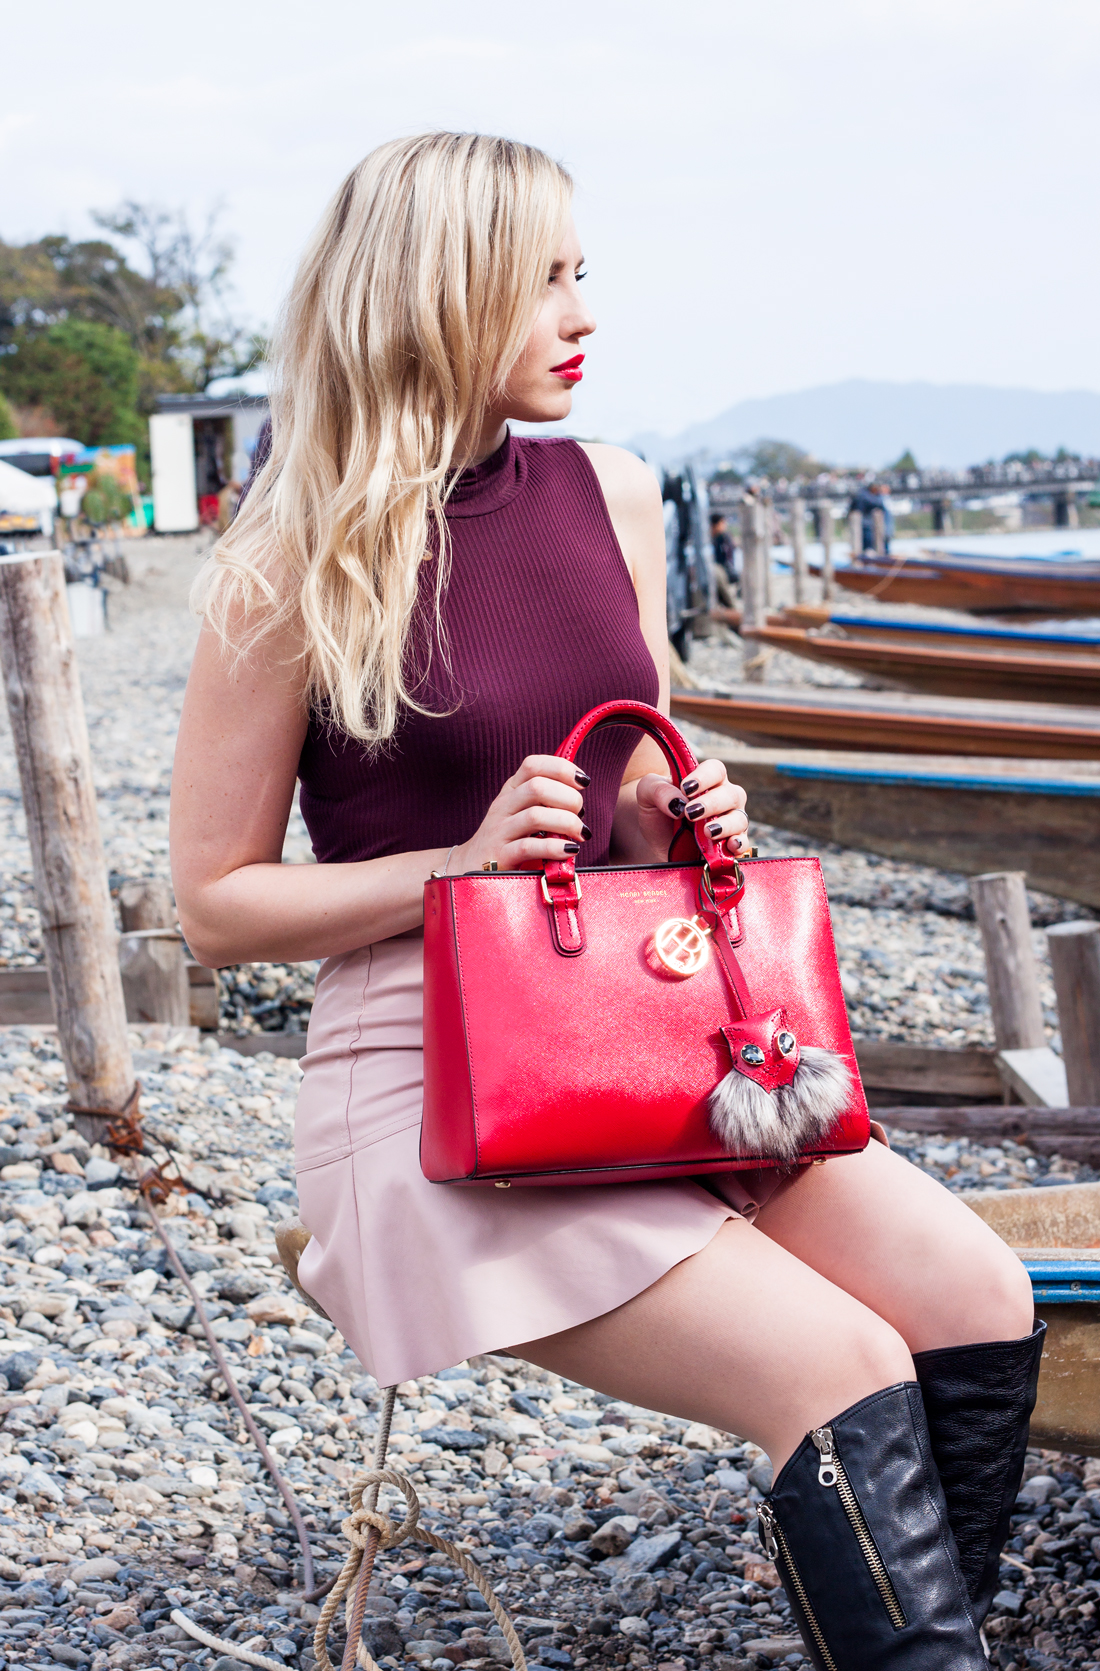 Henri Bendel Fall 2015, Henri Bendel bag, Henri Bendel accessories, Henri Bendel red bag, Henri Bendel collaboration, RewardStyle, Red bag, Kyoto,Arashiyama bamboo grove, kyoto river, kyoto fall, japan, japan sightseeing, Arashiyama, japanese carriage kyoto, kyoto boat, japan fashion blog